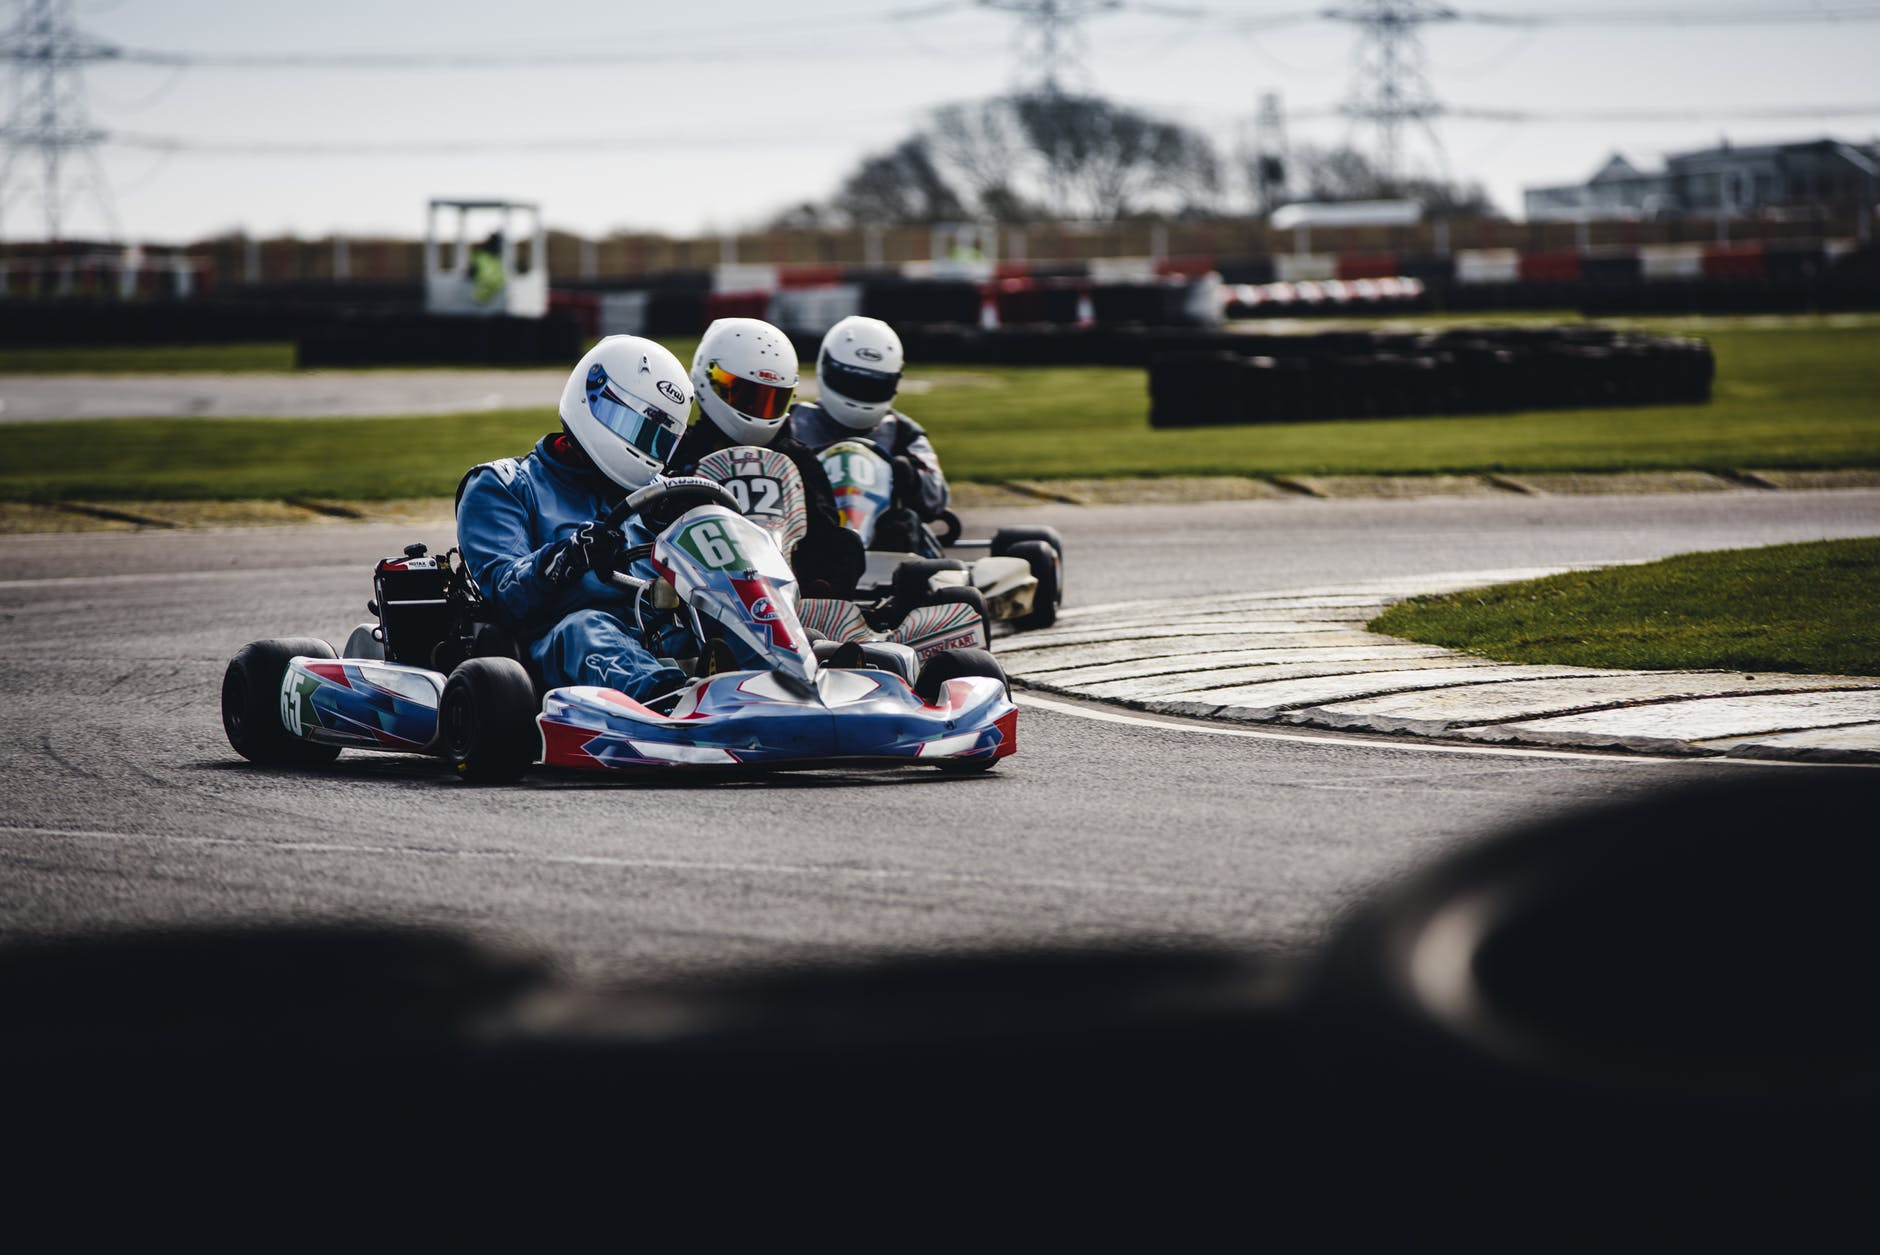 Experience Lakeside & Brentwood Karting's tracks and new go